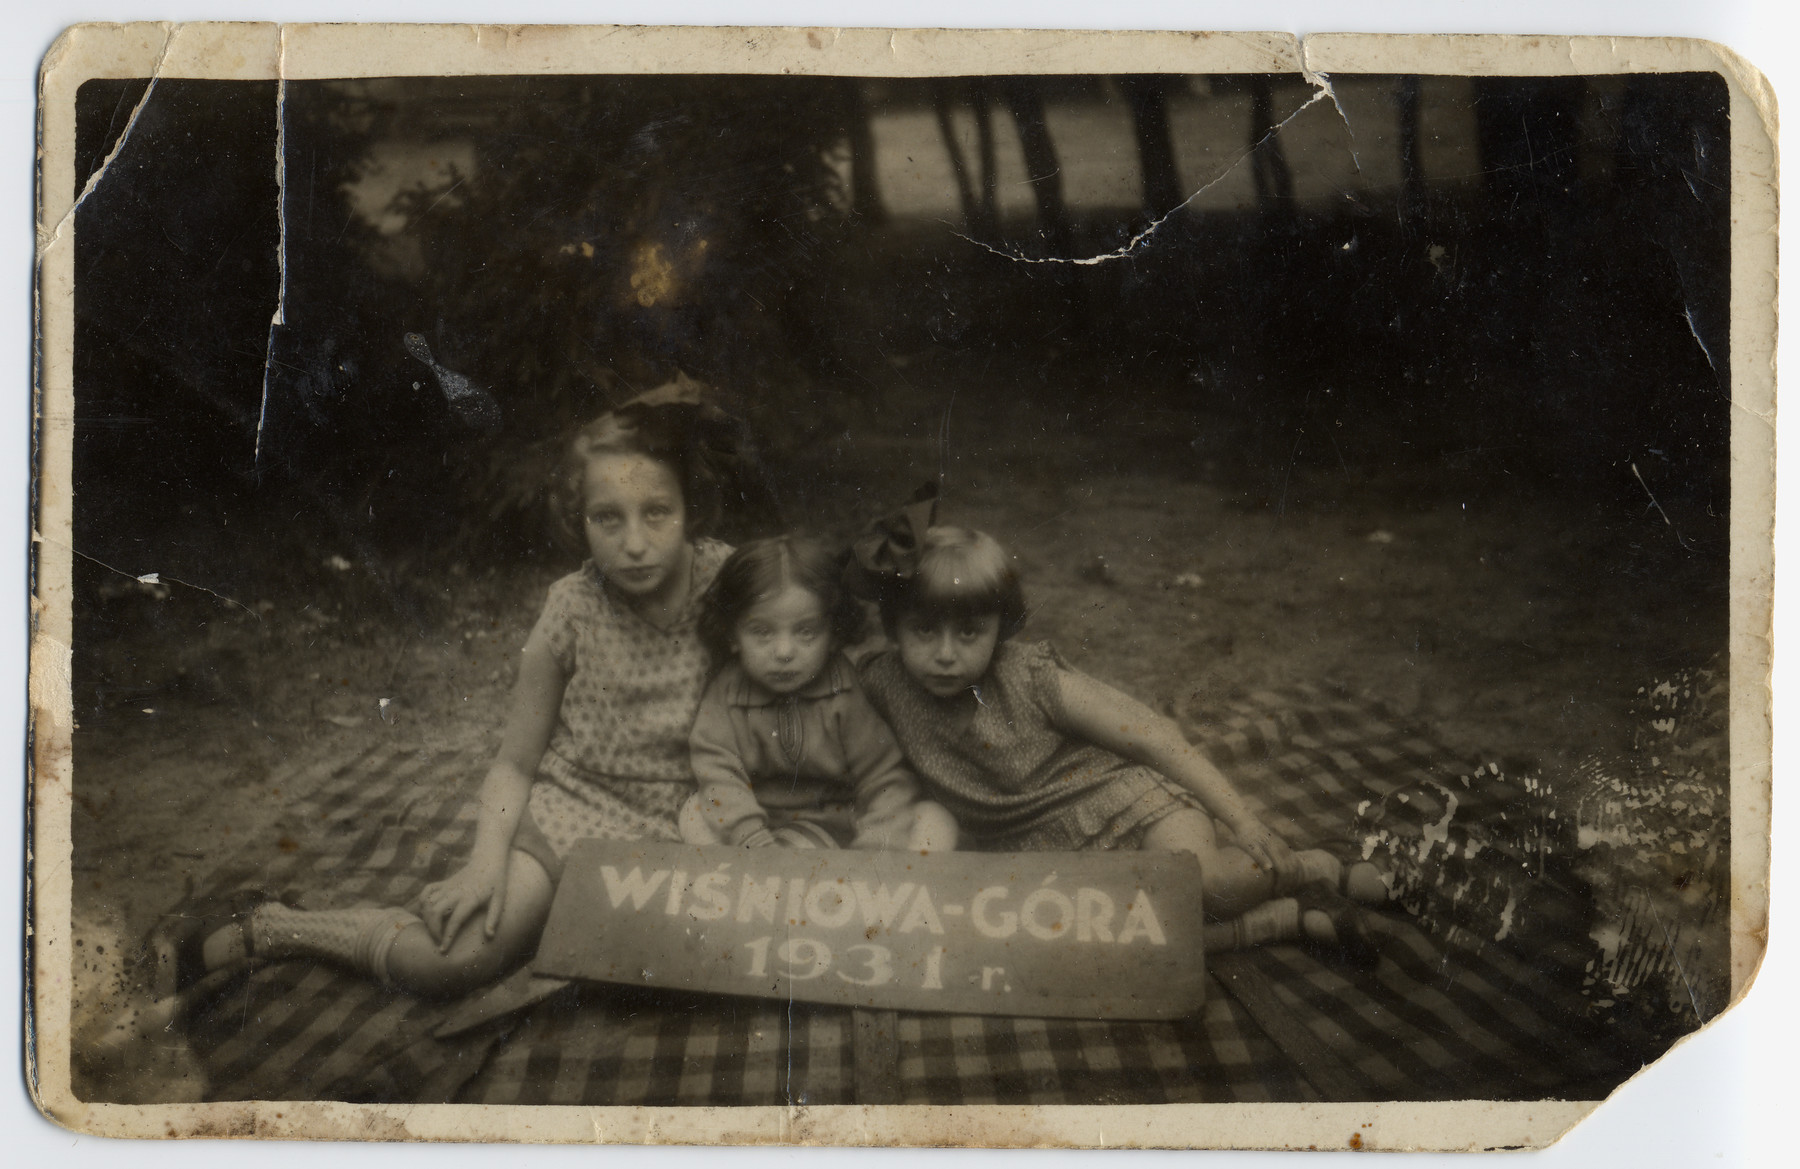 Three little girls sit on a blanket during a vacation in Wisniowa-Gora.   Pictured from the right to the left are Halina Gozdzik (later Milich), Helka Natanowicz and her sister Cela.